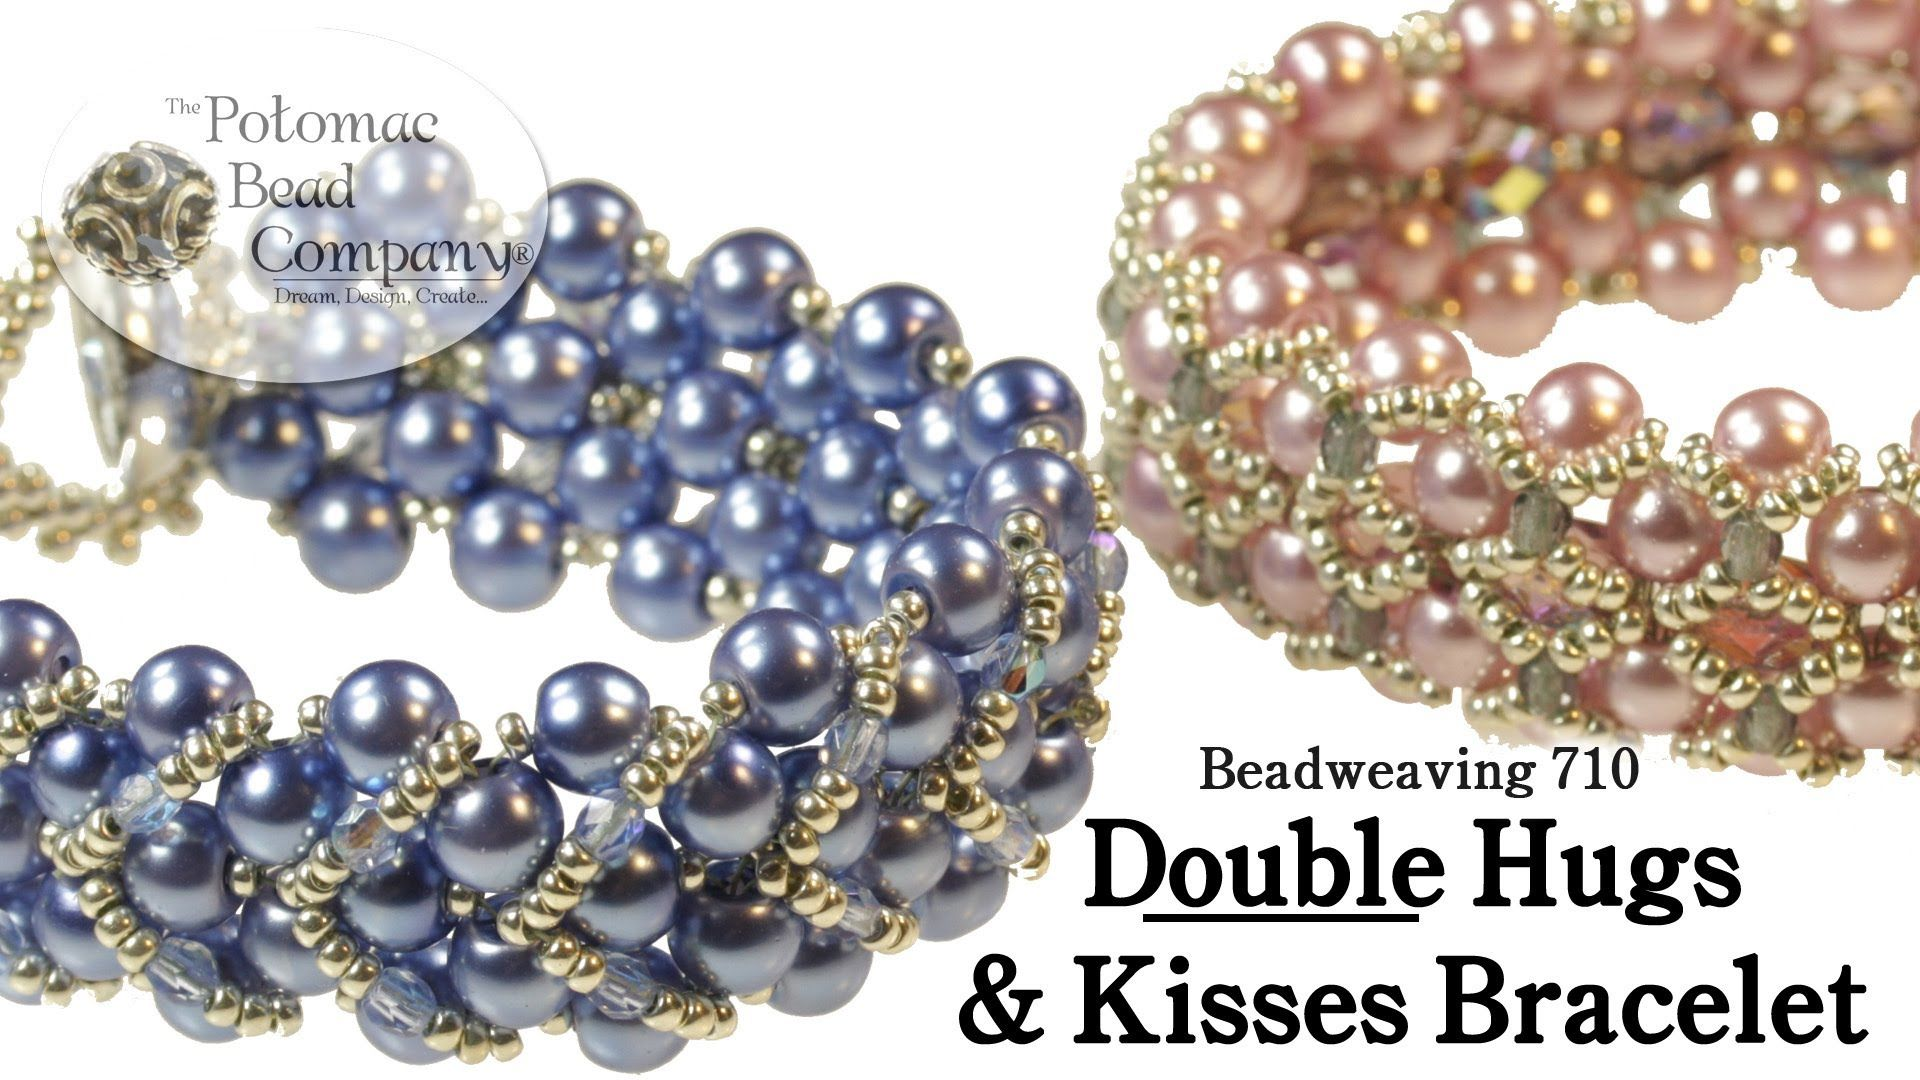 Free master class on weaving bracelets from beads with step-by-step photos